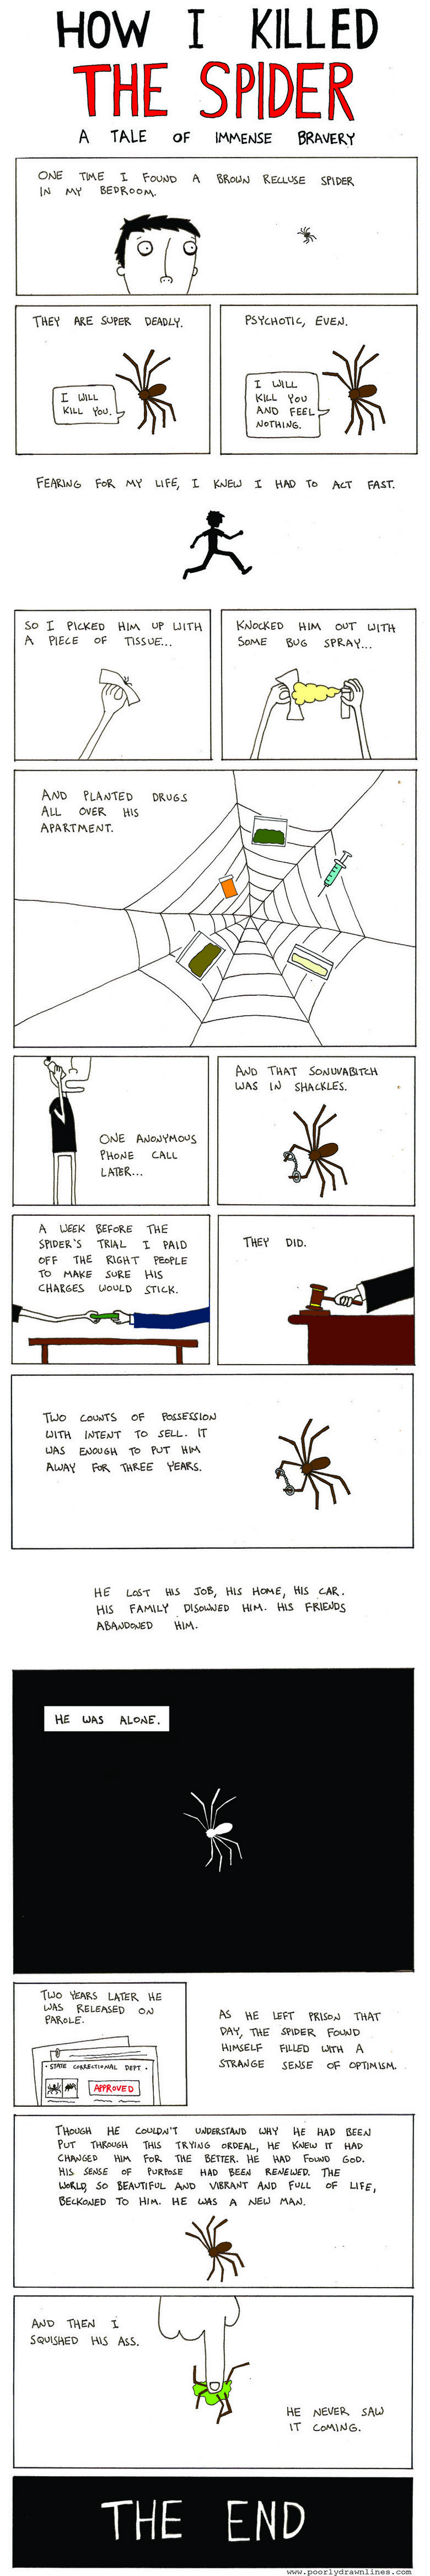 A tale of a spider. EDIT: Thanks for all these thumb up's. First post over 20 <br /> 2EDIT: Woah Came online today asking myself if I got some more thumb